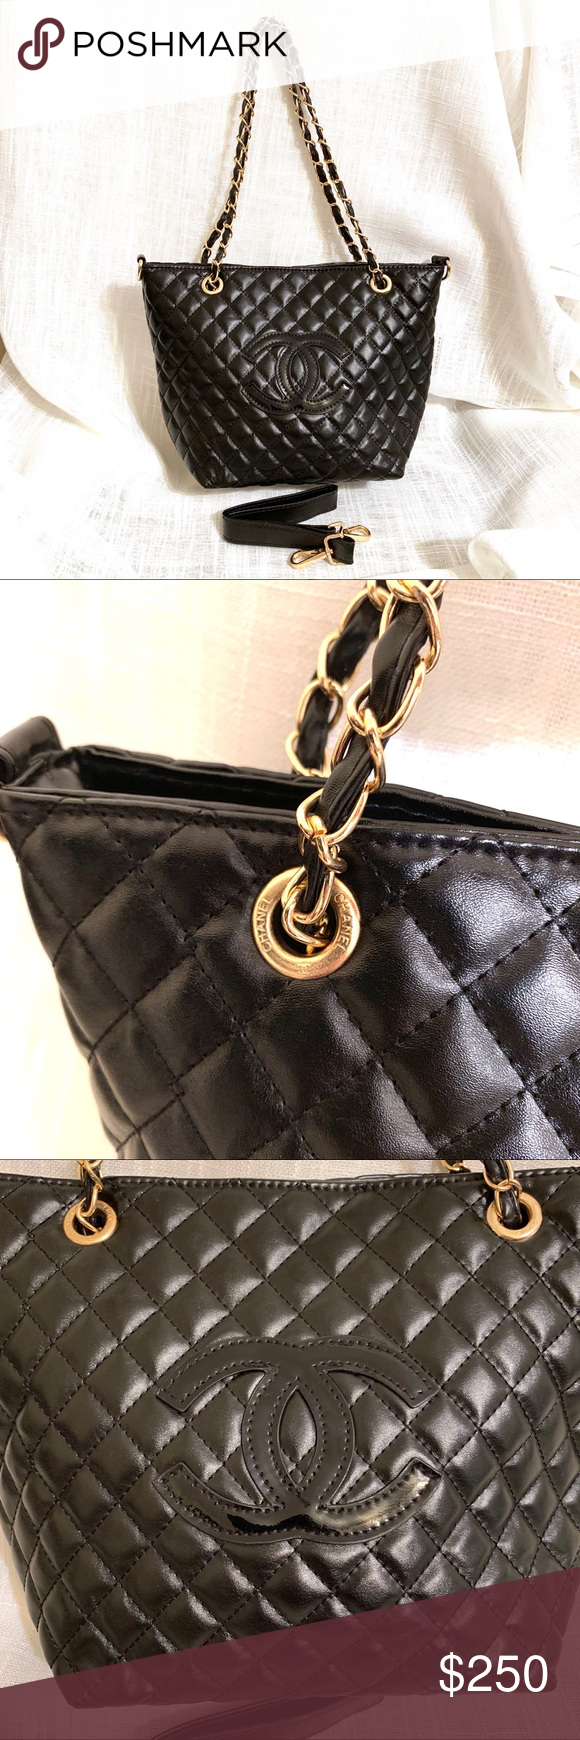 3bfe81ed8fd3ec Chanel Precision Quilted VIP Gift Tote Bag Chain Brand new, never used, no  flaws